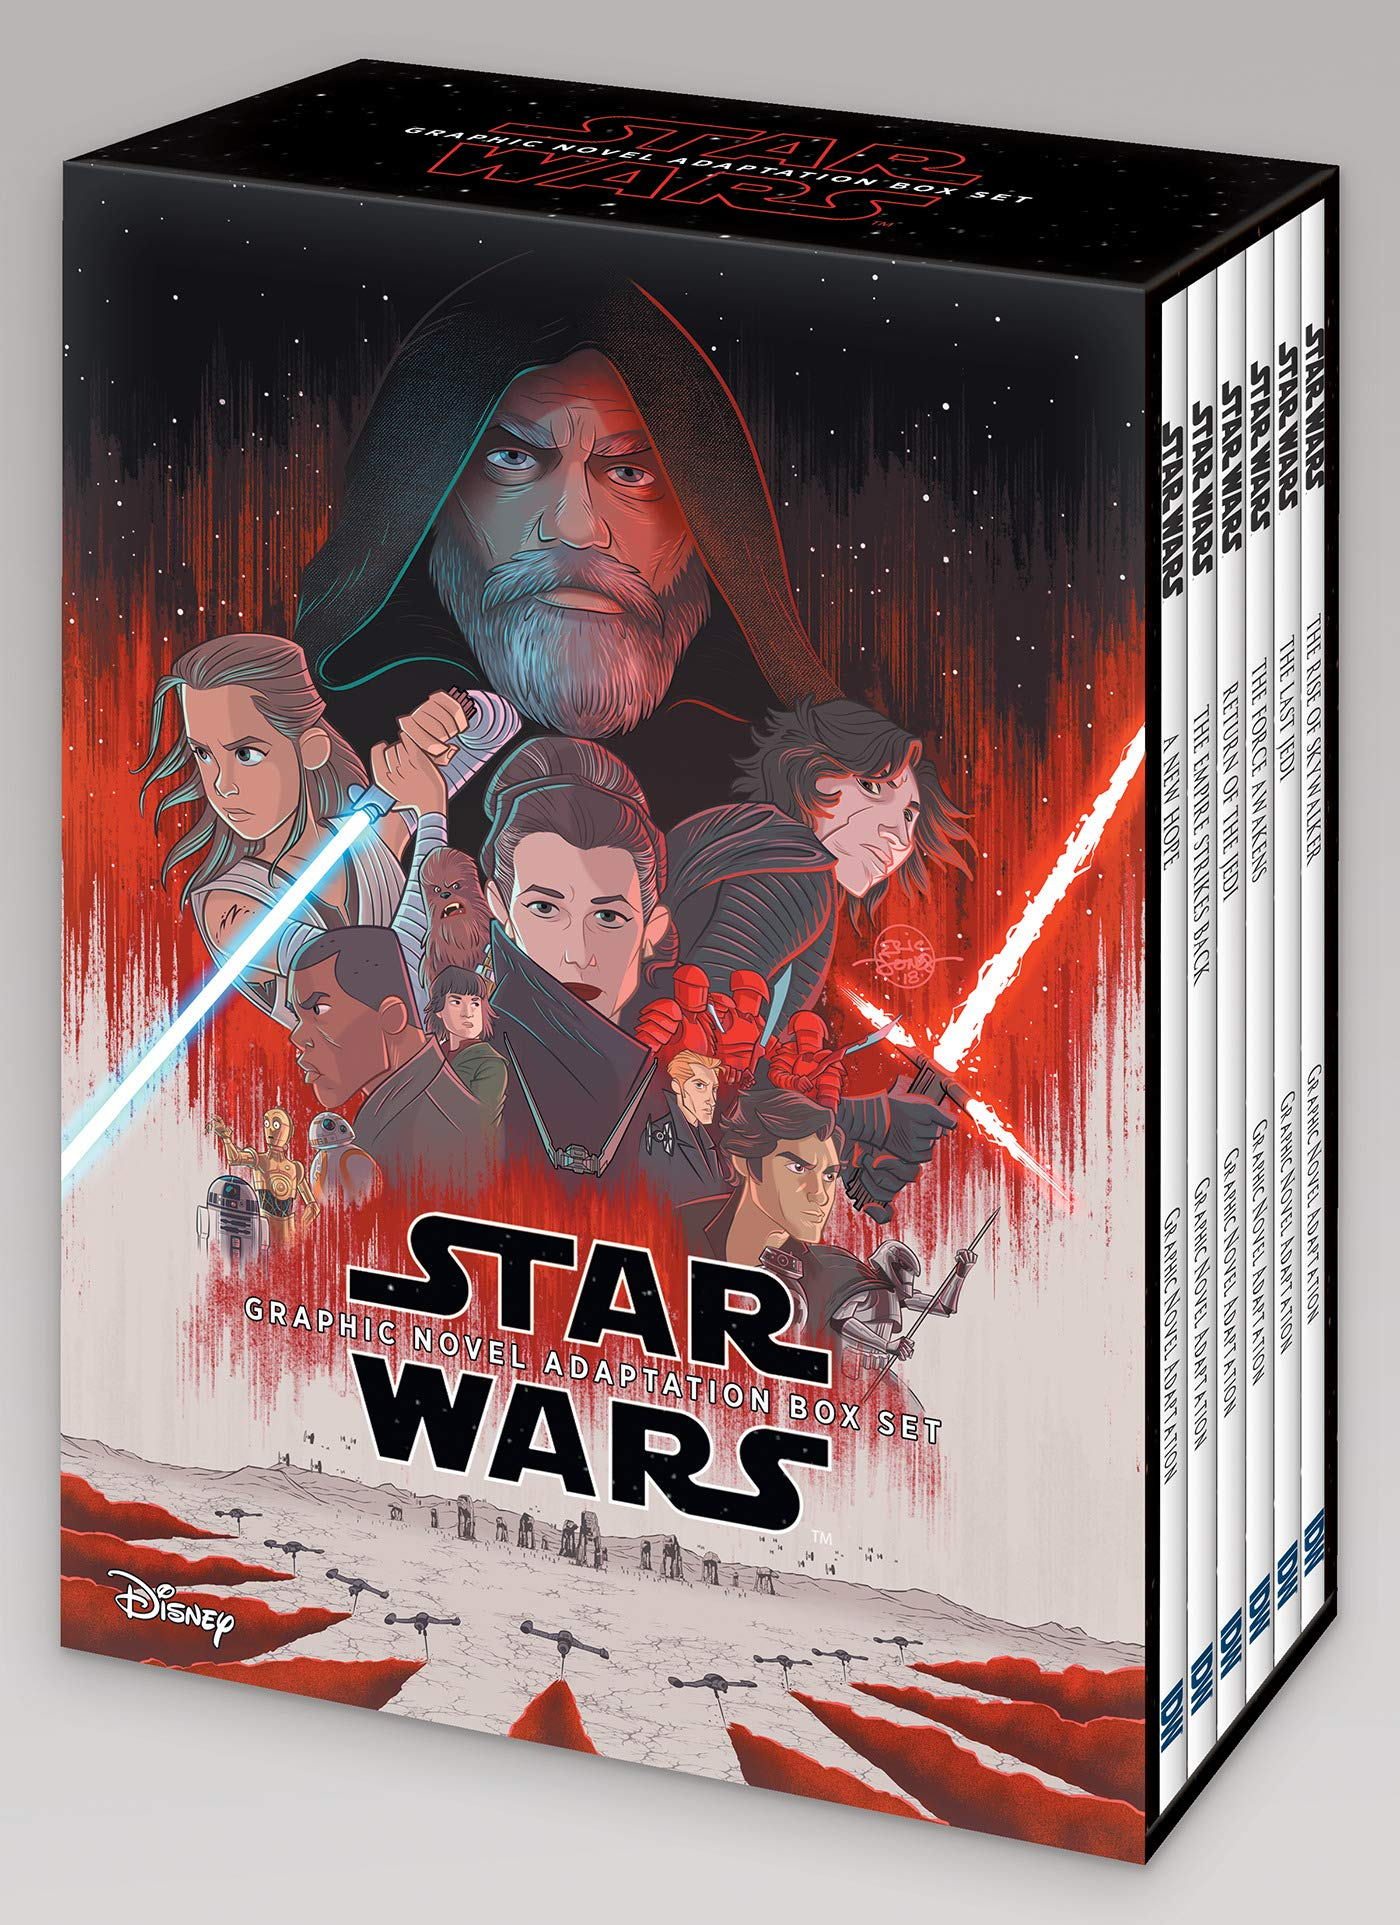 Amazon Opens Pre-Orders For Star Wars Episodes IV–IX Graphic Novel Adaptation Box Set